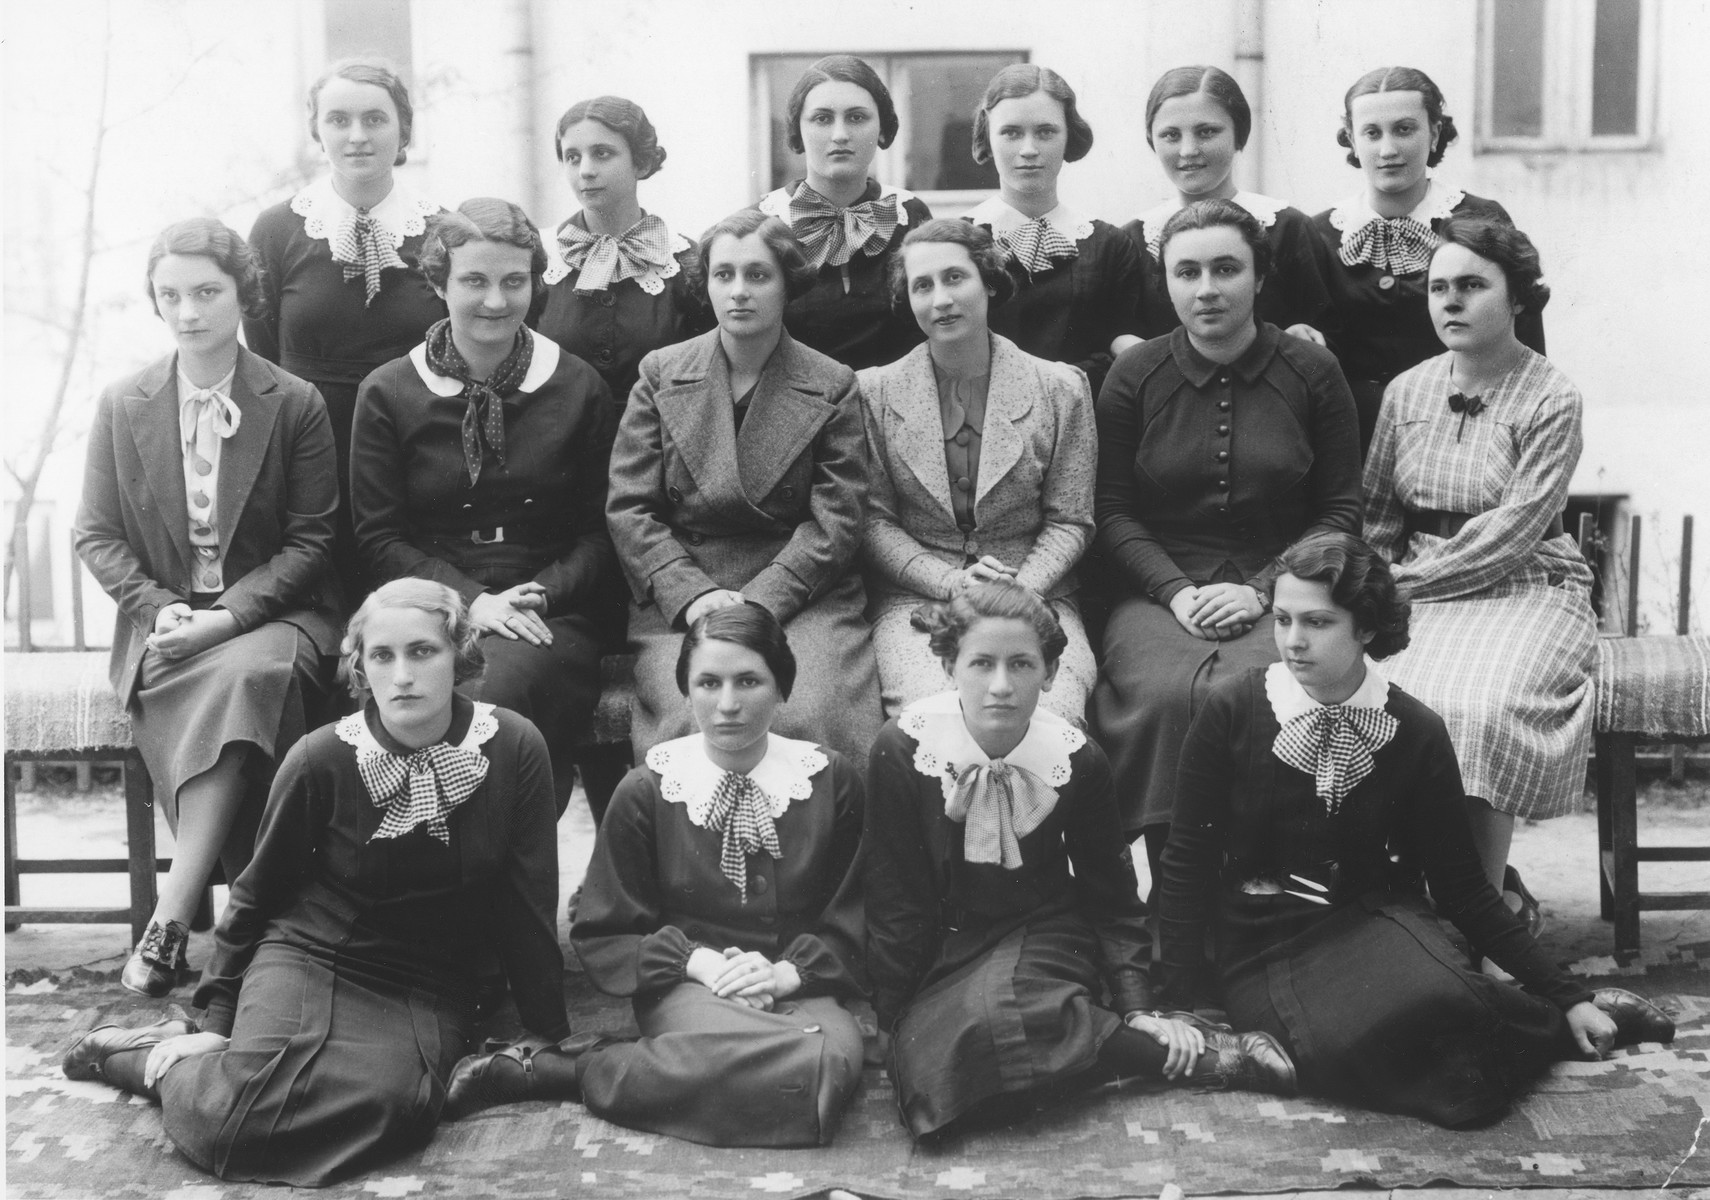 Lotte Gottfried (front row, left) and her graduating class at the Hoffmann gymnasium in Czernowitz.